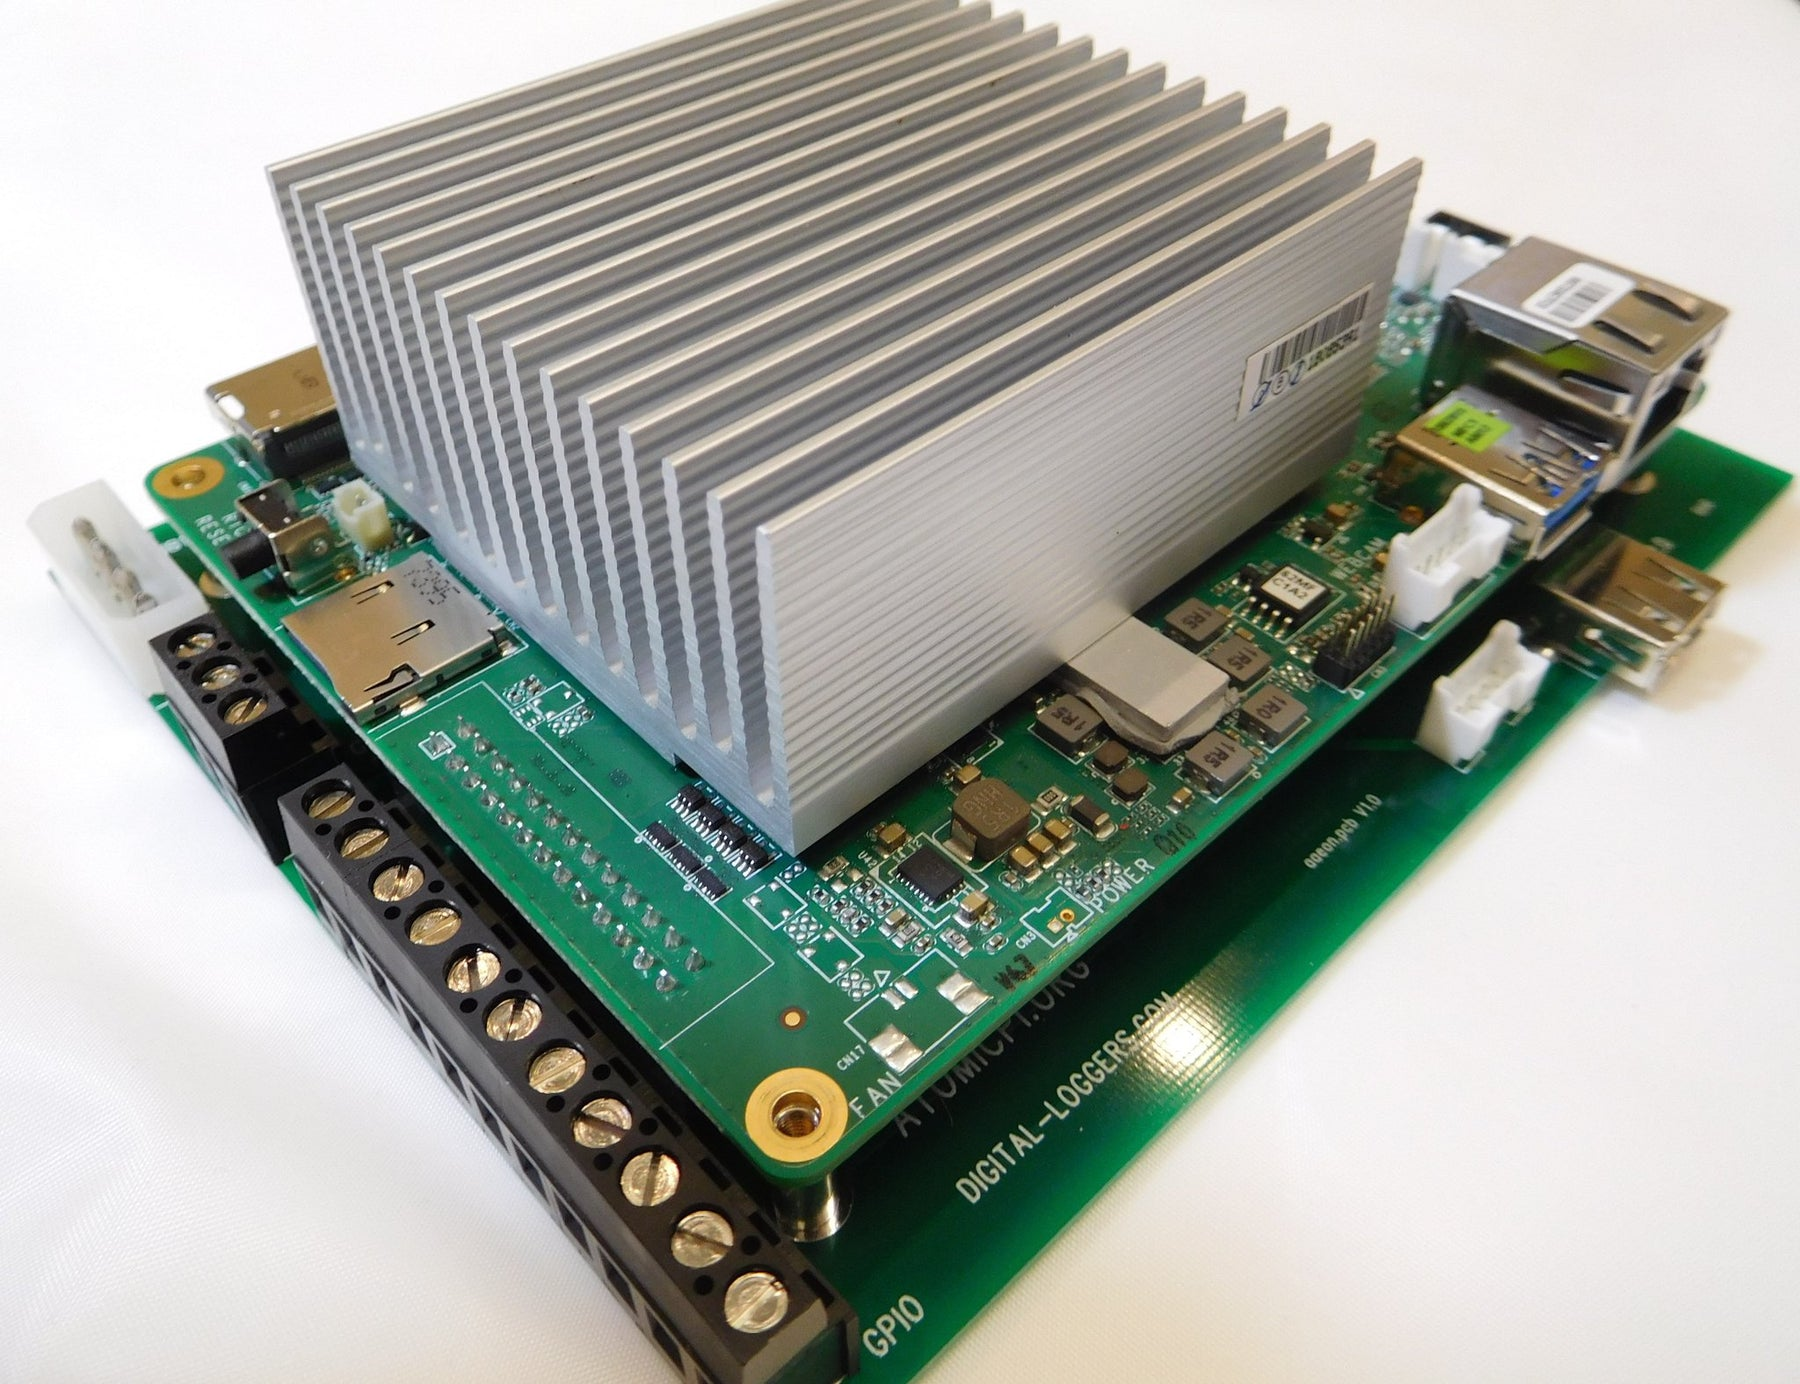 New Product: Atomic Pi Now Available for Preorder